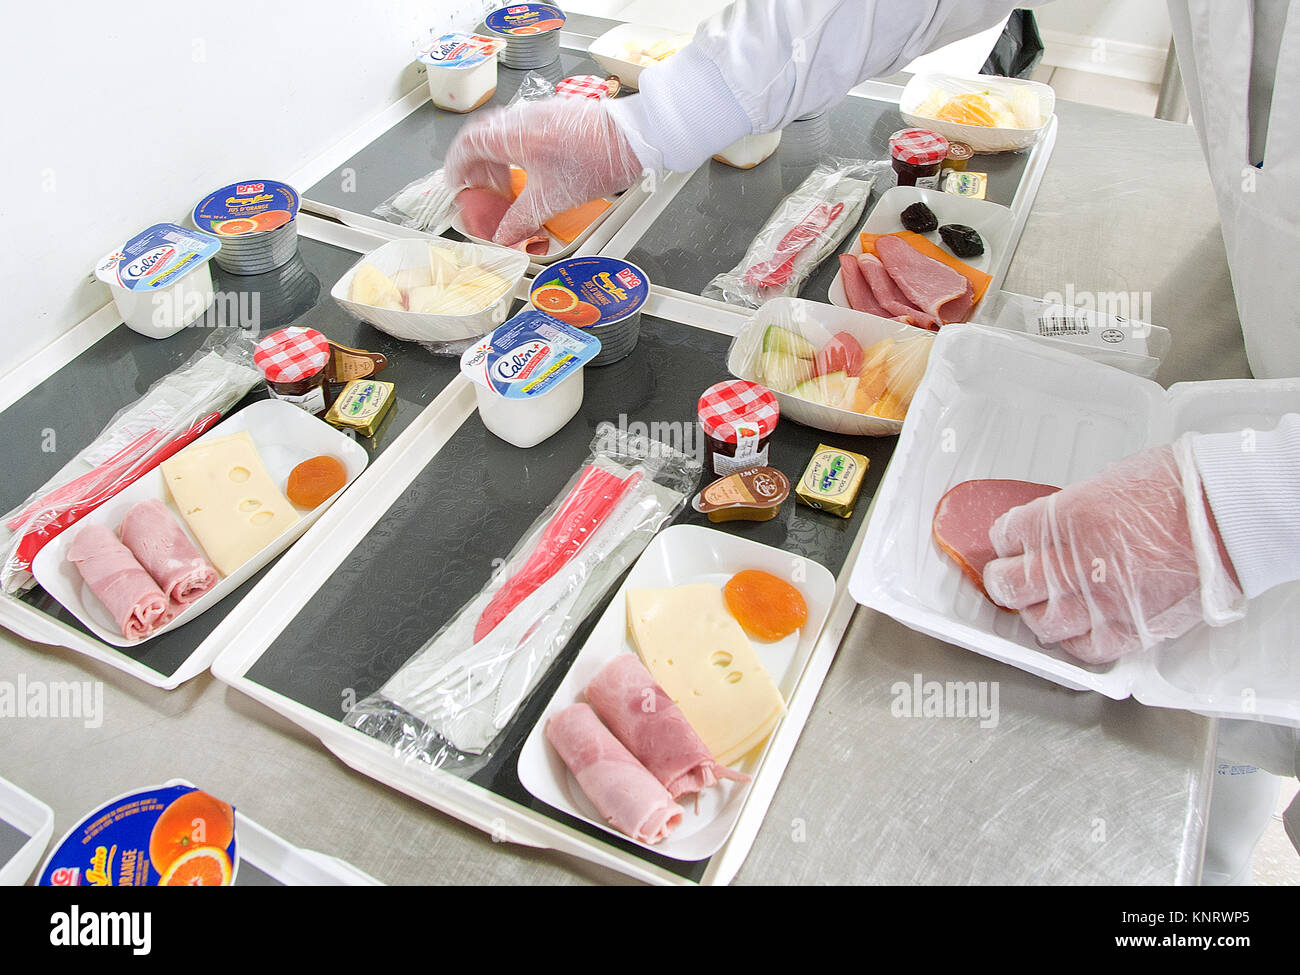 Lille (northern France): preparation of food trays at Lille-Lesquin Airport. - Stock Image